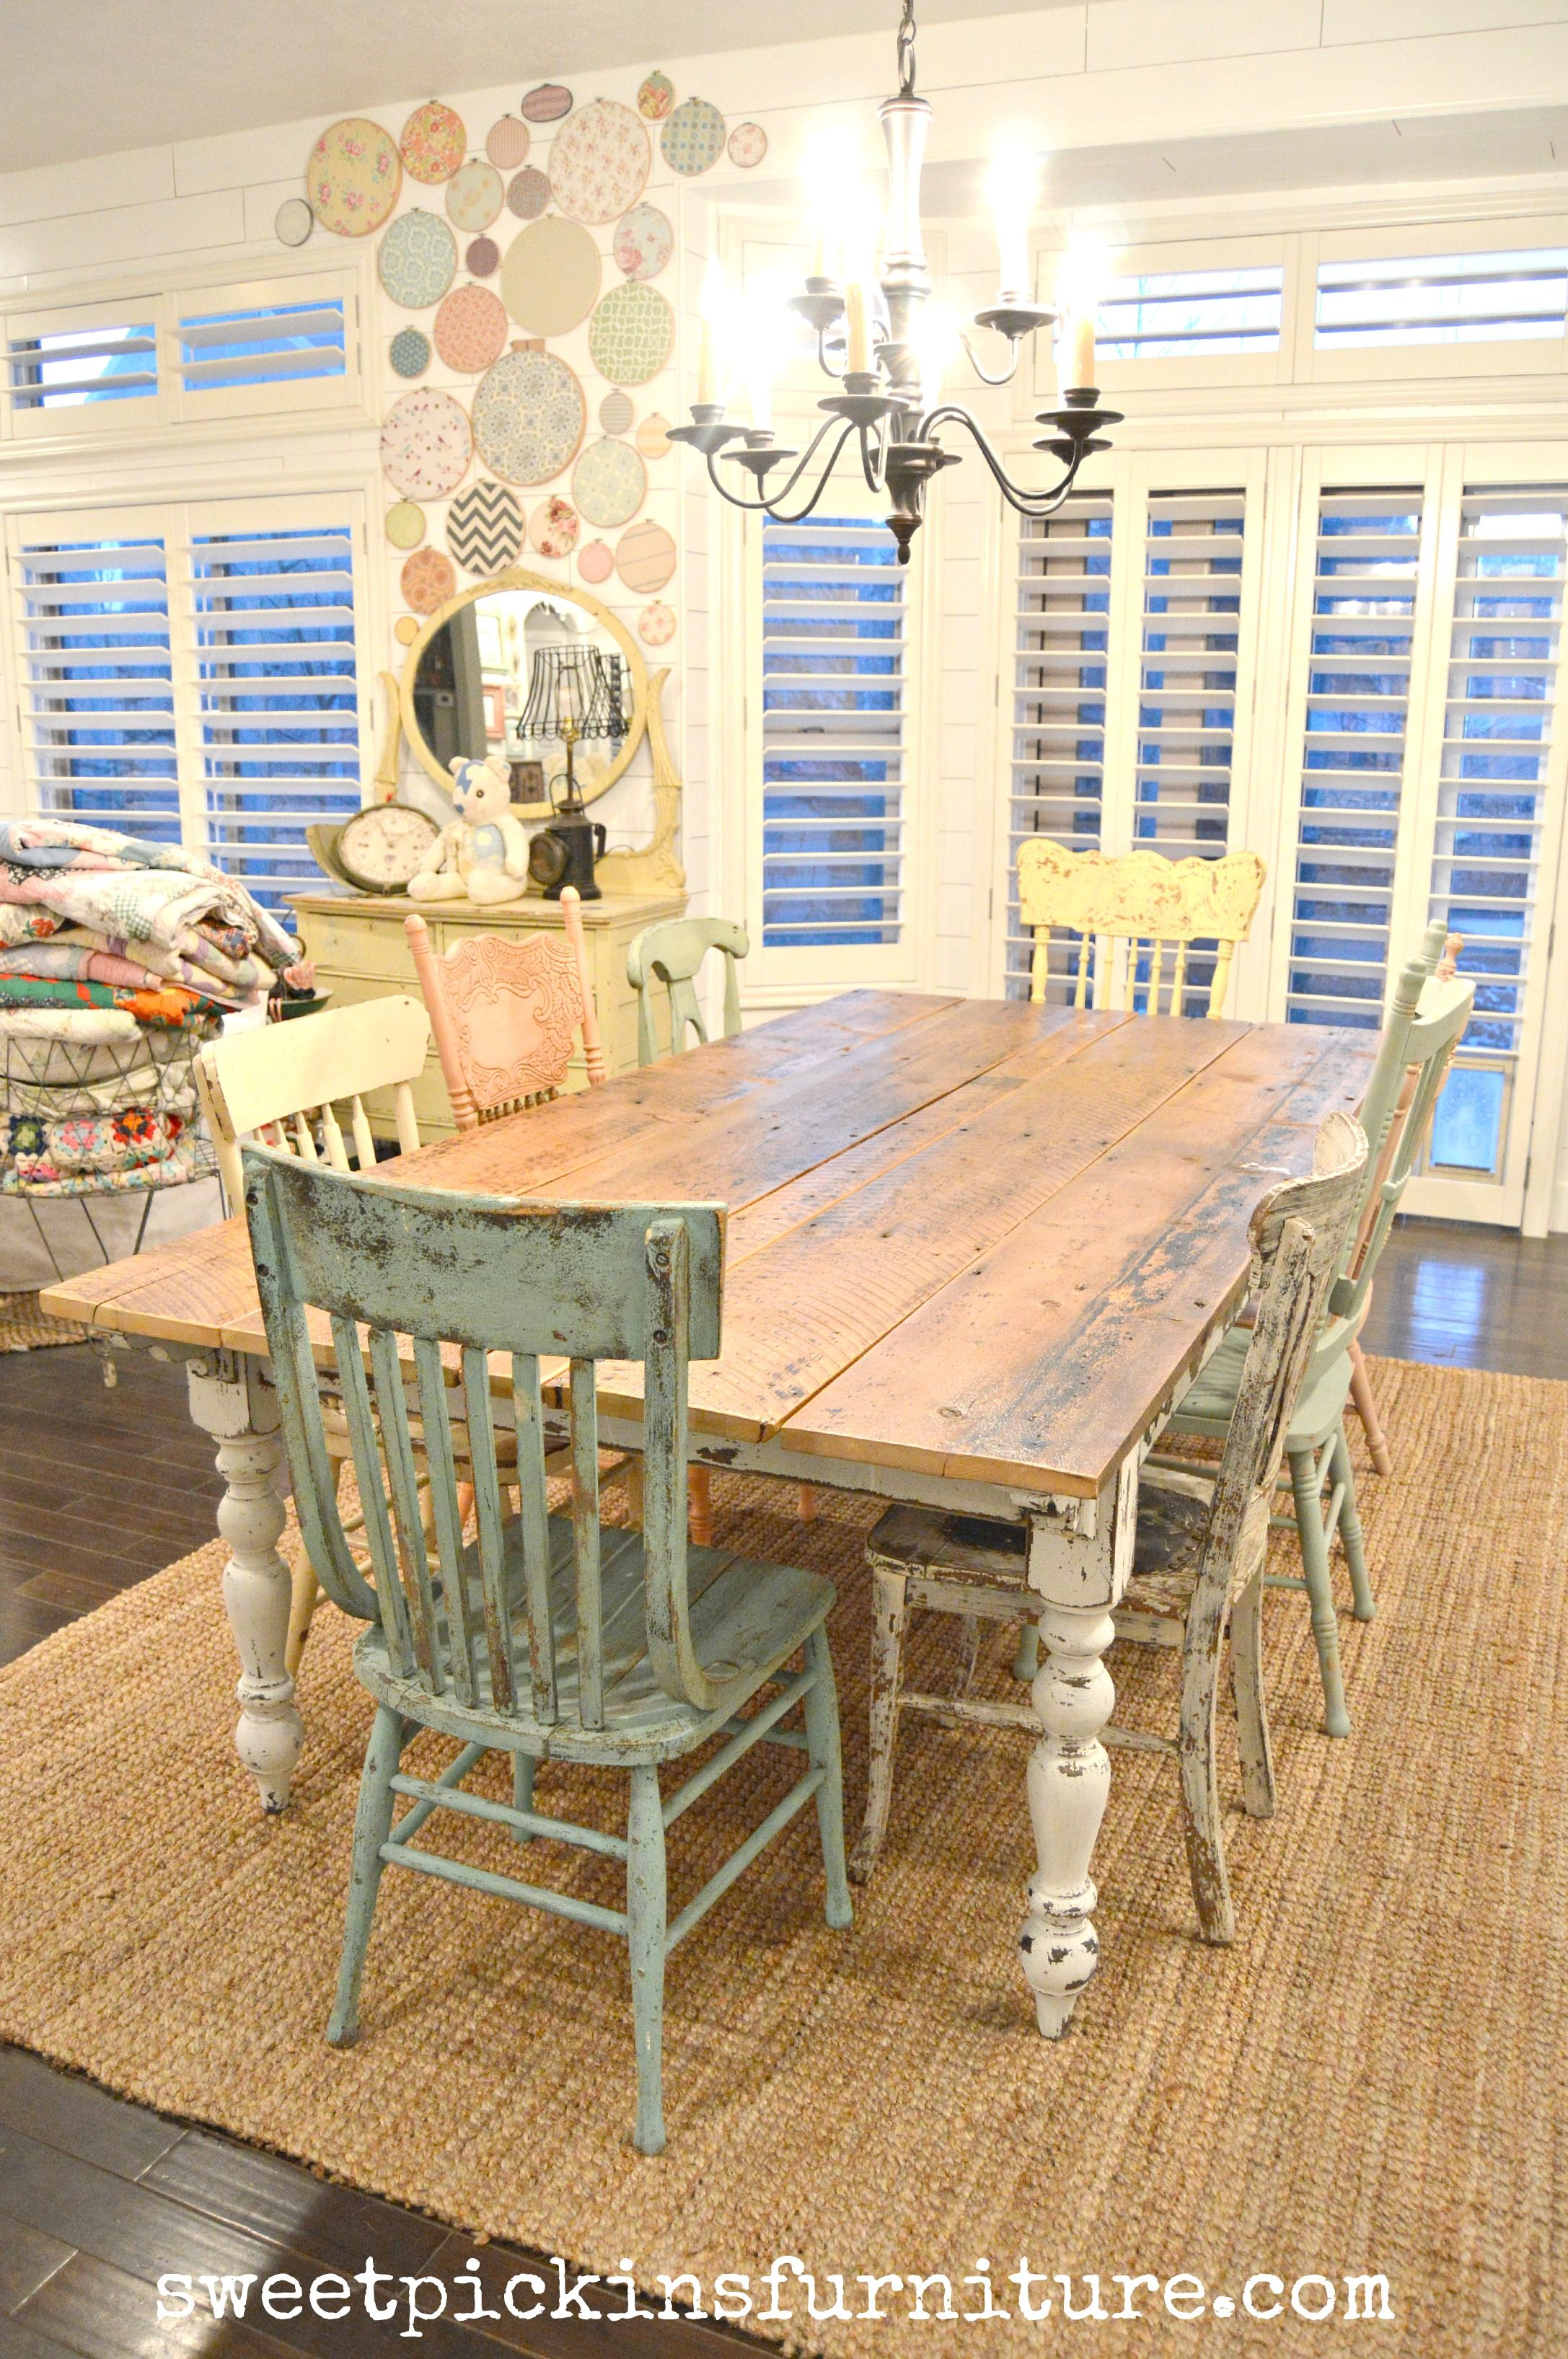 Superior My New Farm Style Table W/mismatched Chairs! Nice Look